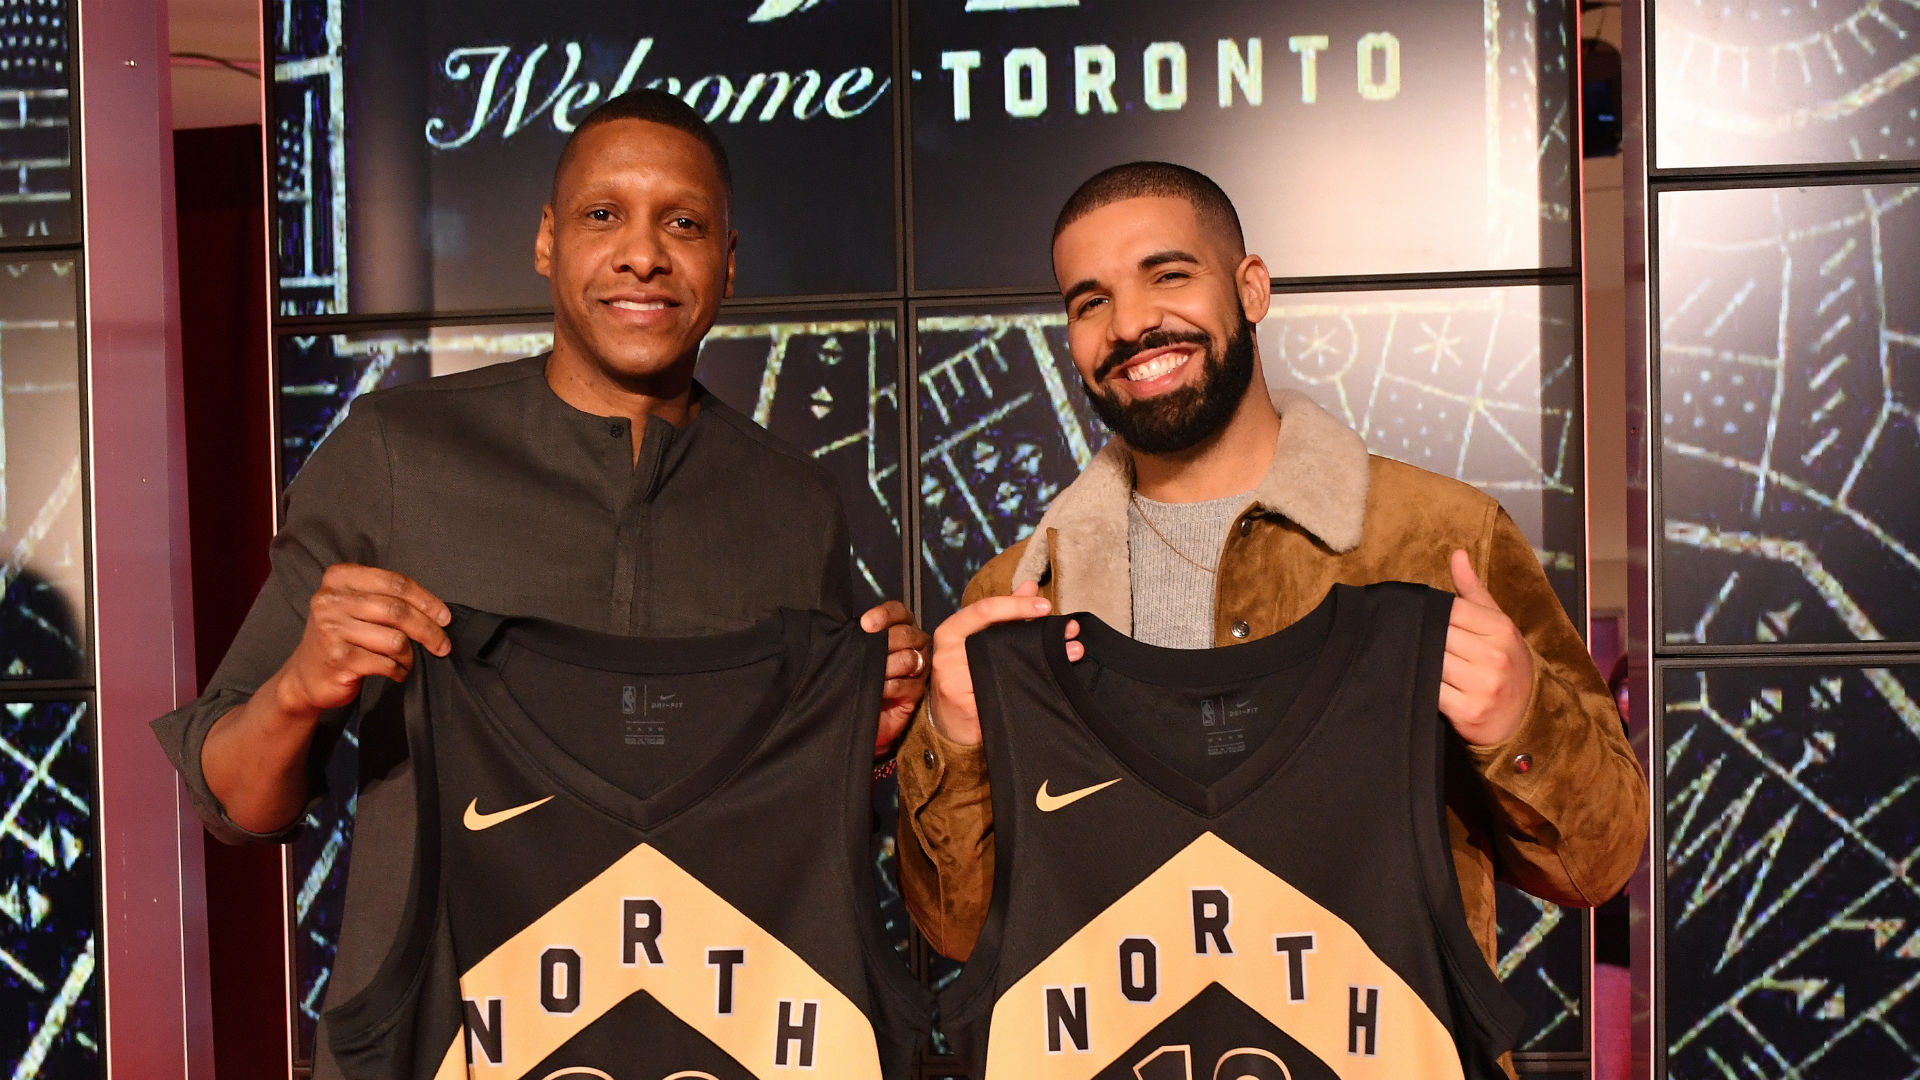 best website 4cb3f cedc2 When are the Toronto Raptors' 2018-19 'Welcome Toronto ...